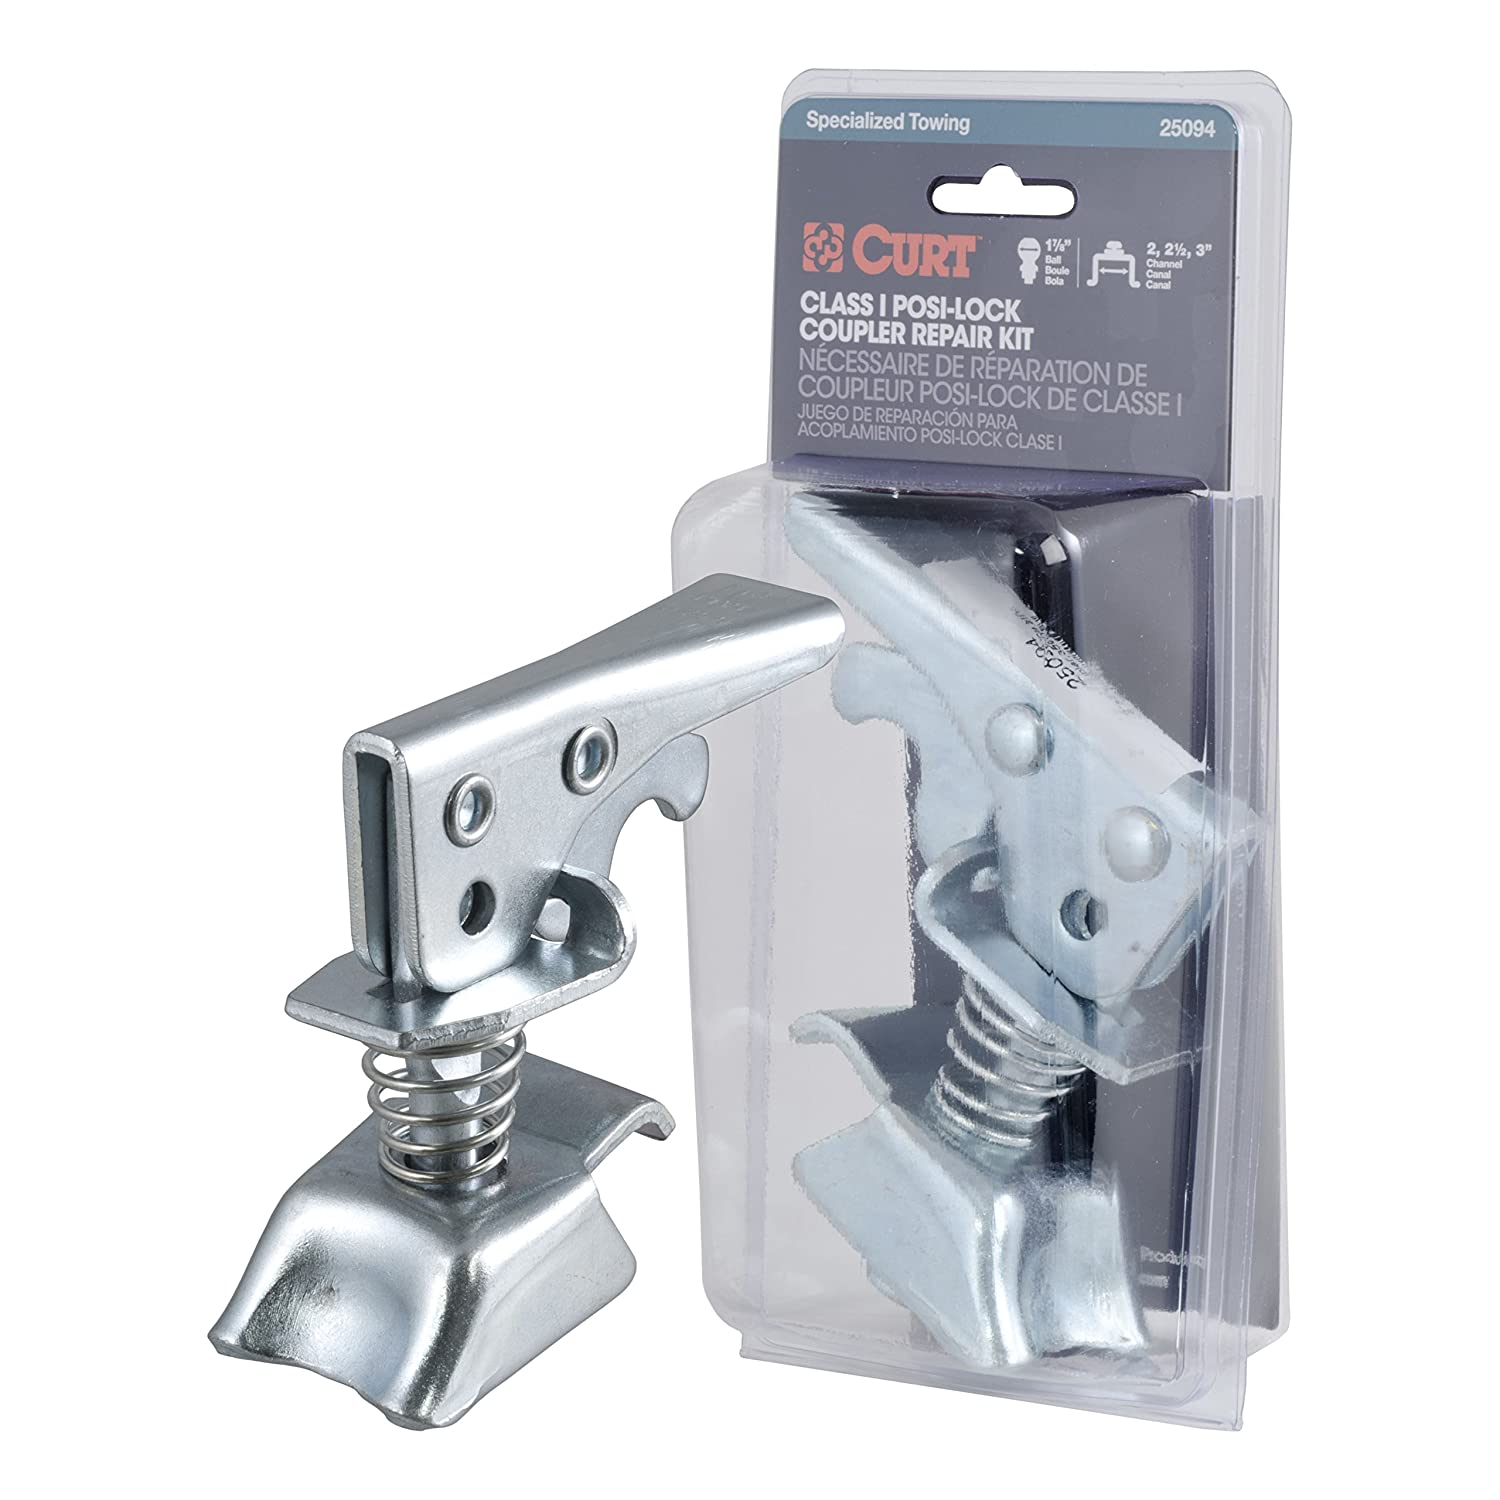 CURT 25094 Posi-Lock Coupler Replacement Latch Compatible with 1-7//8-Inch Trailer Hitch Ball